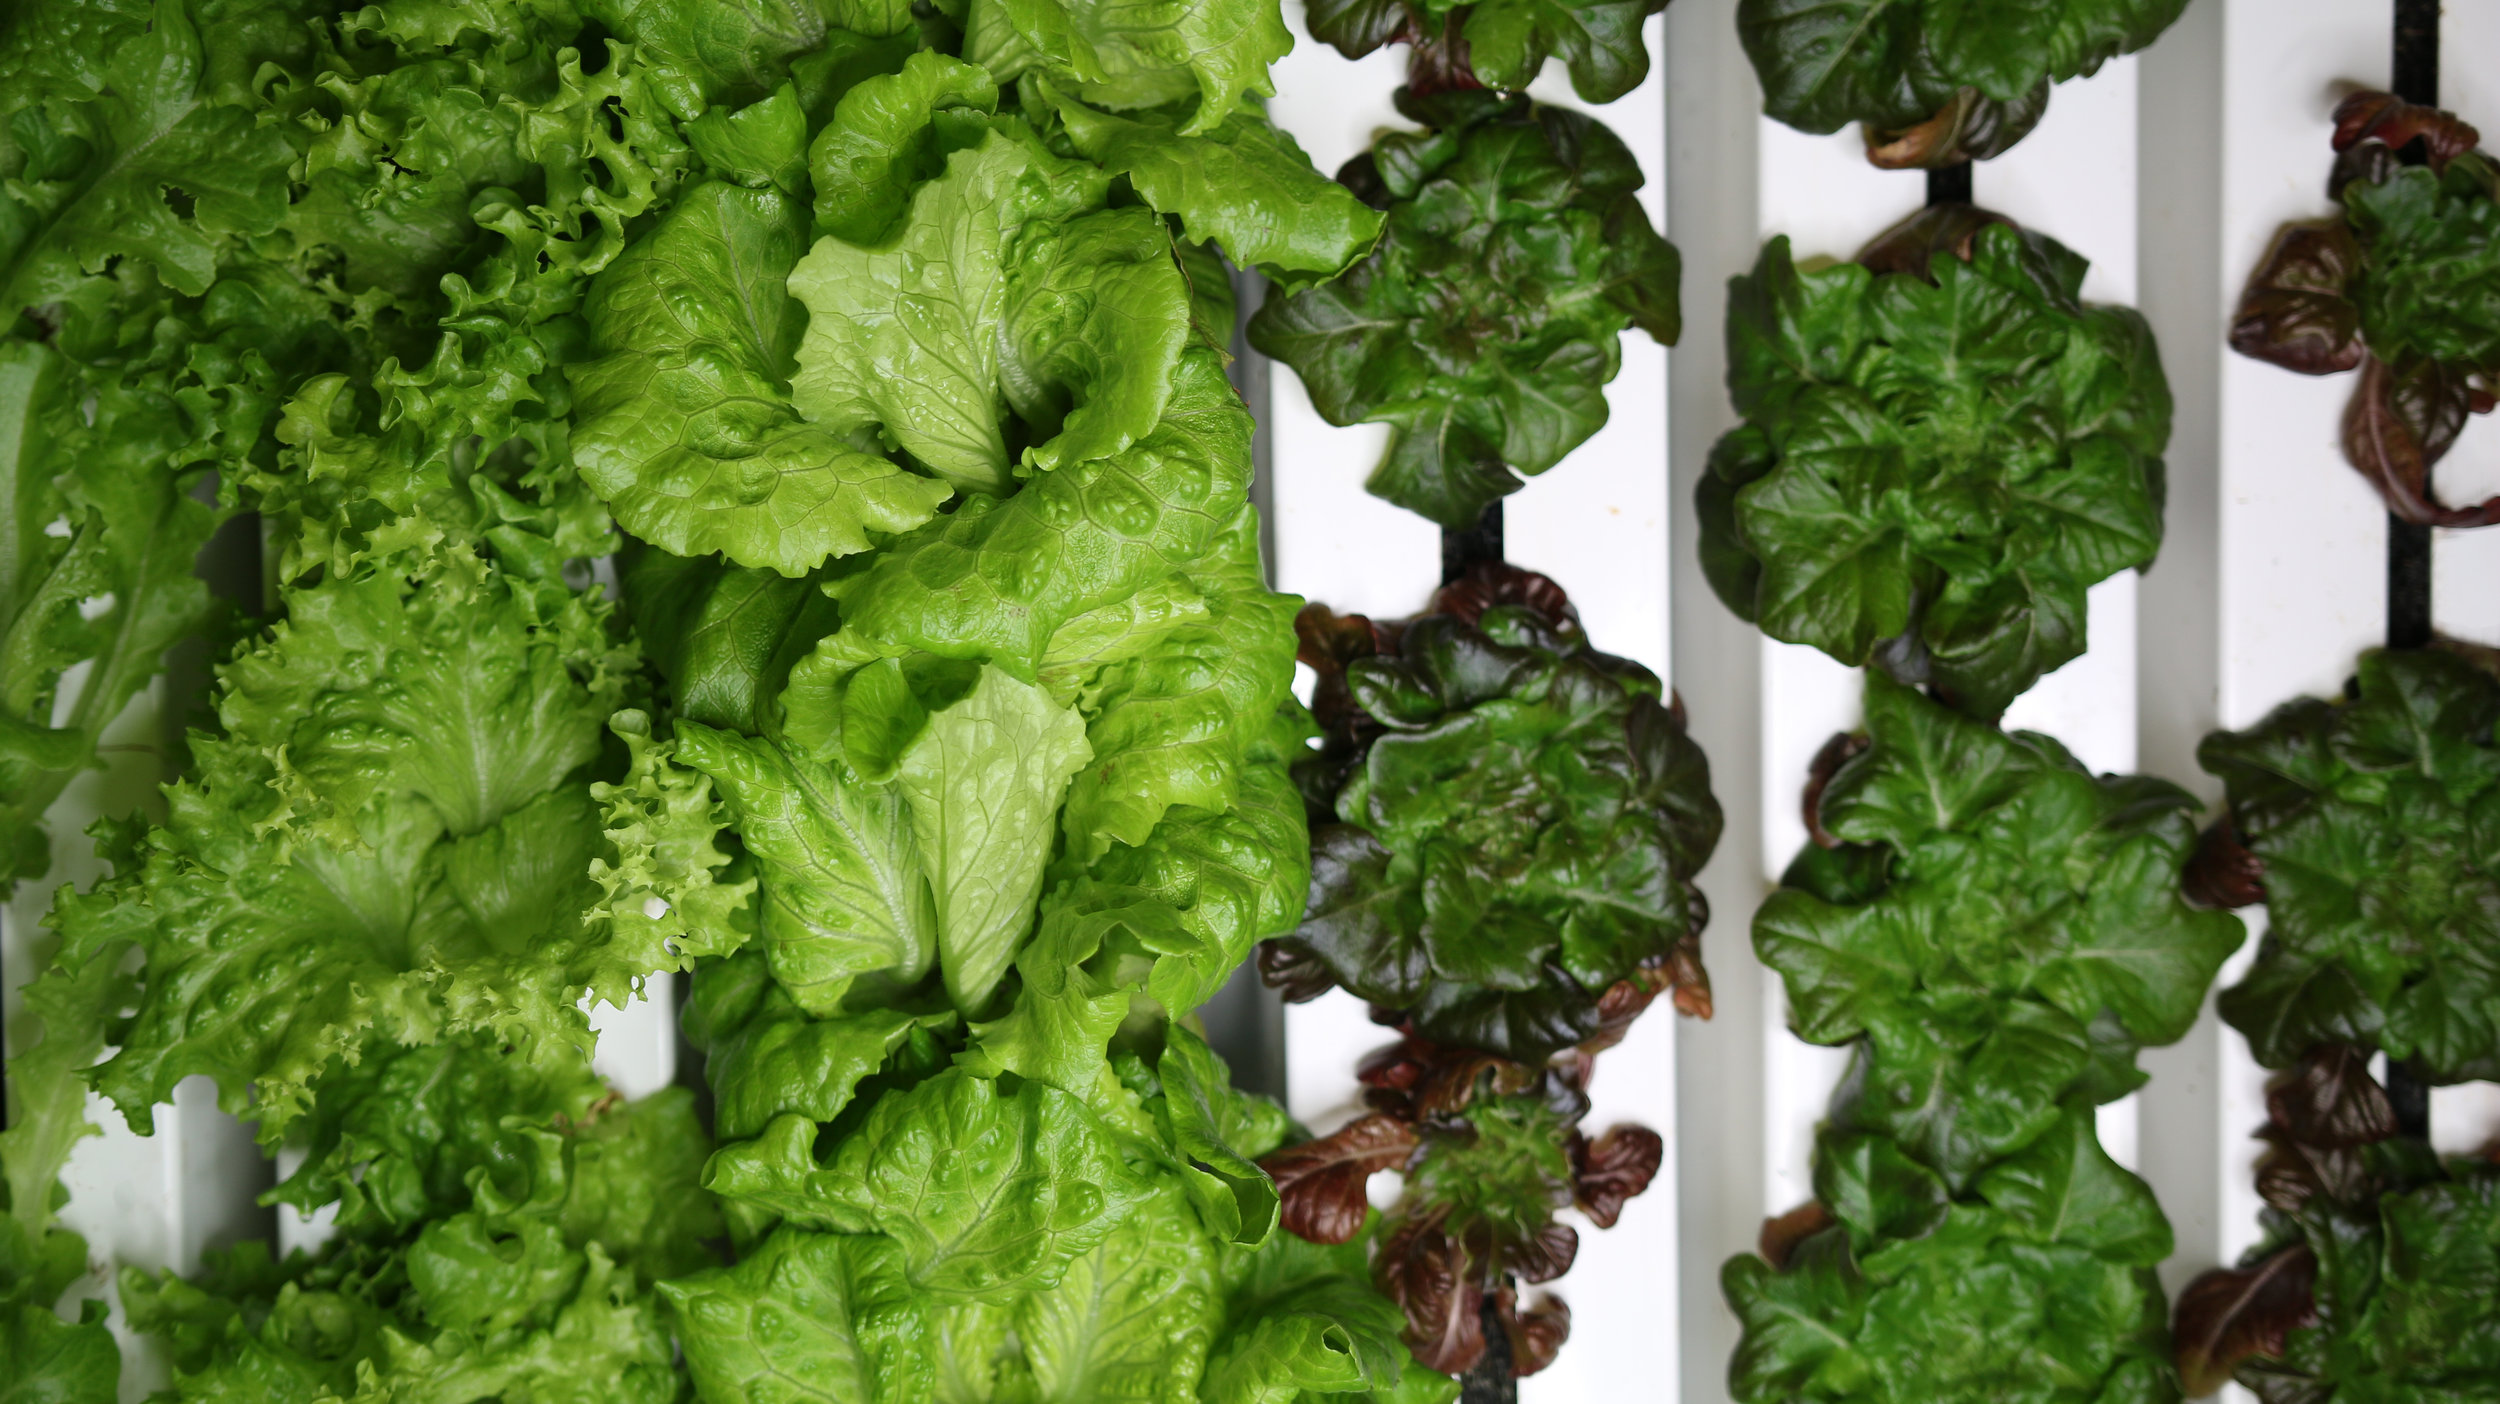 """Right now we are growing a variety of large and mini head lettuce, kale, kalettes, arugula, mustard greens and herbs like cilantro, dill, parsley, and sorrel.""     Oasis Springs Farm"